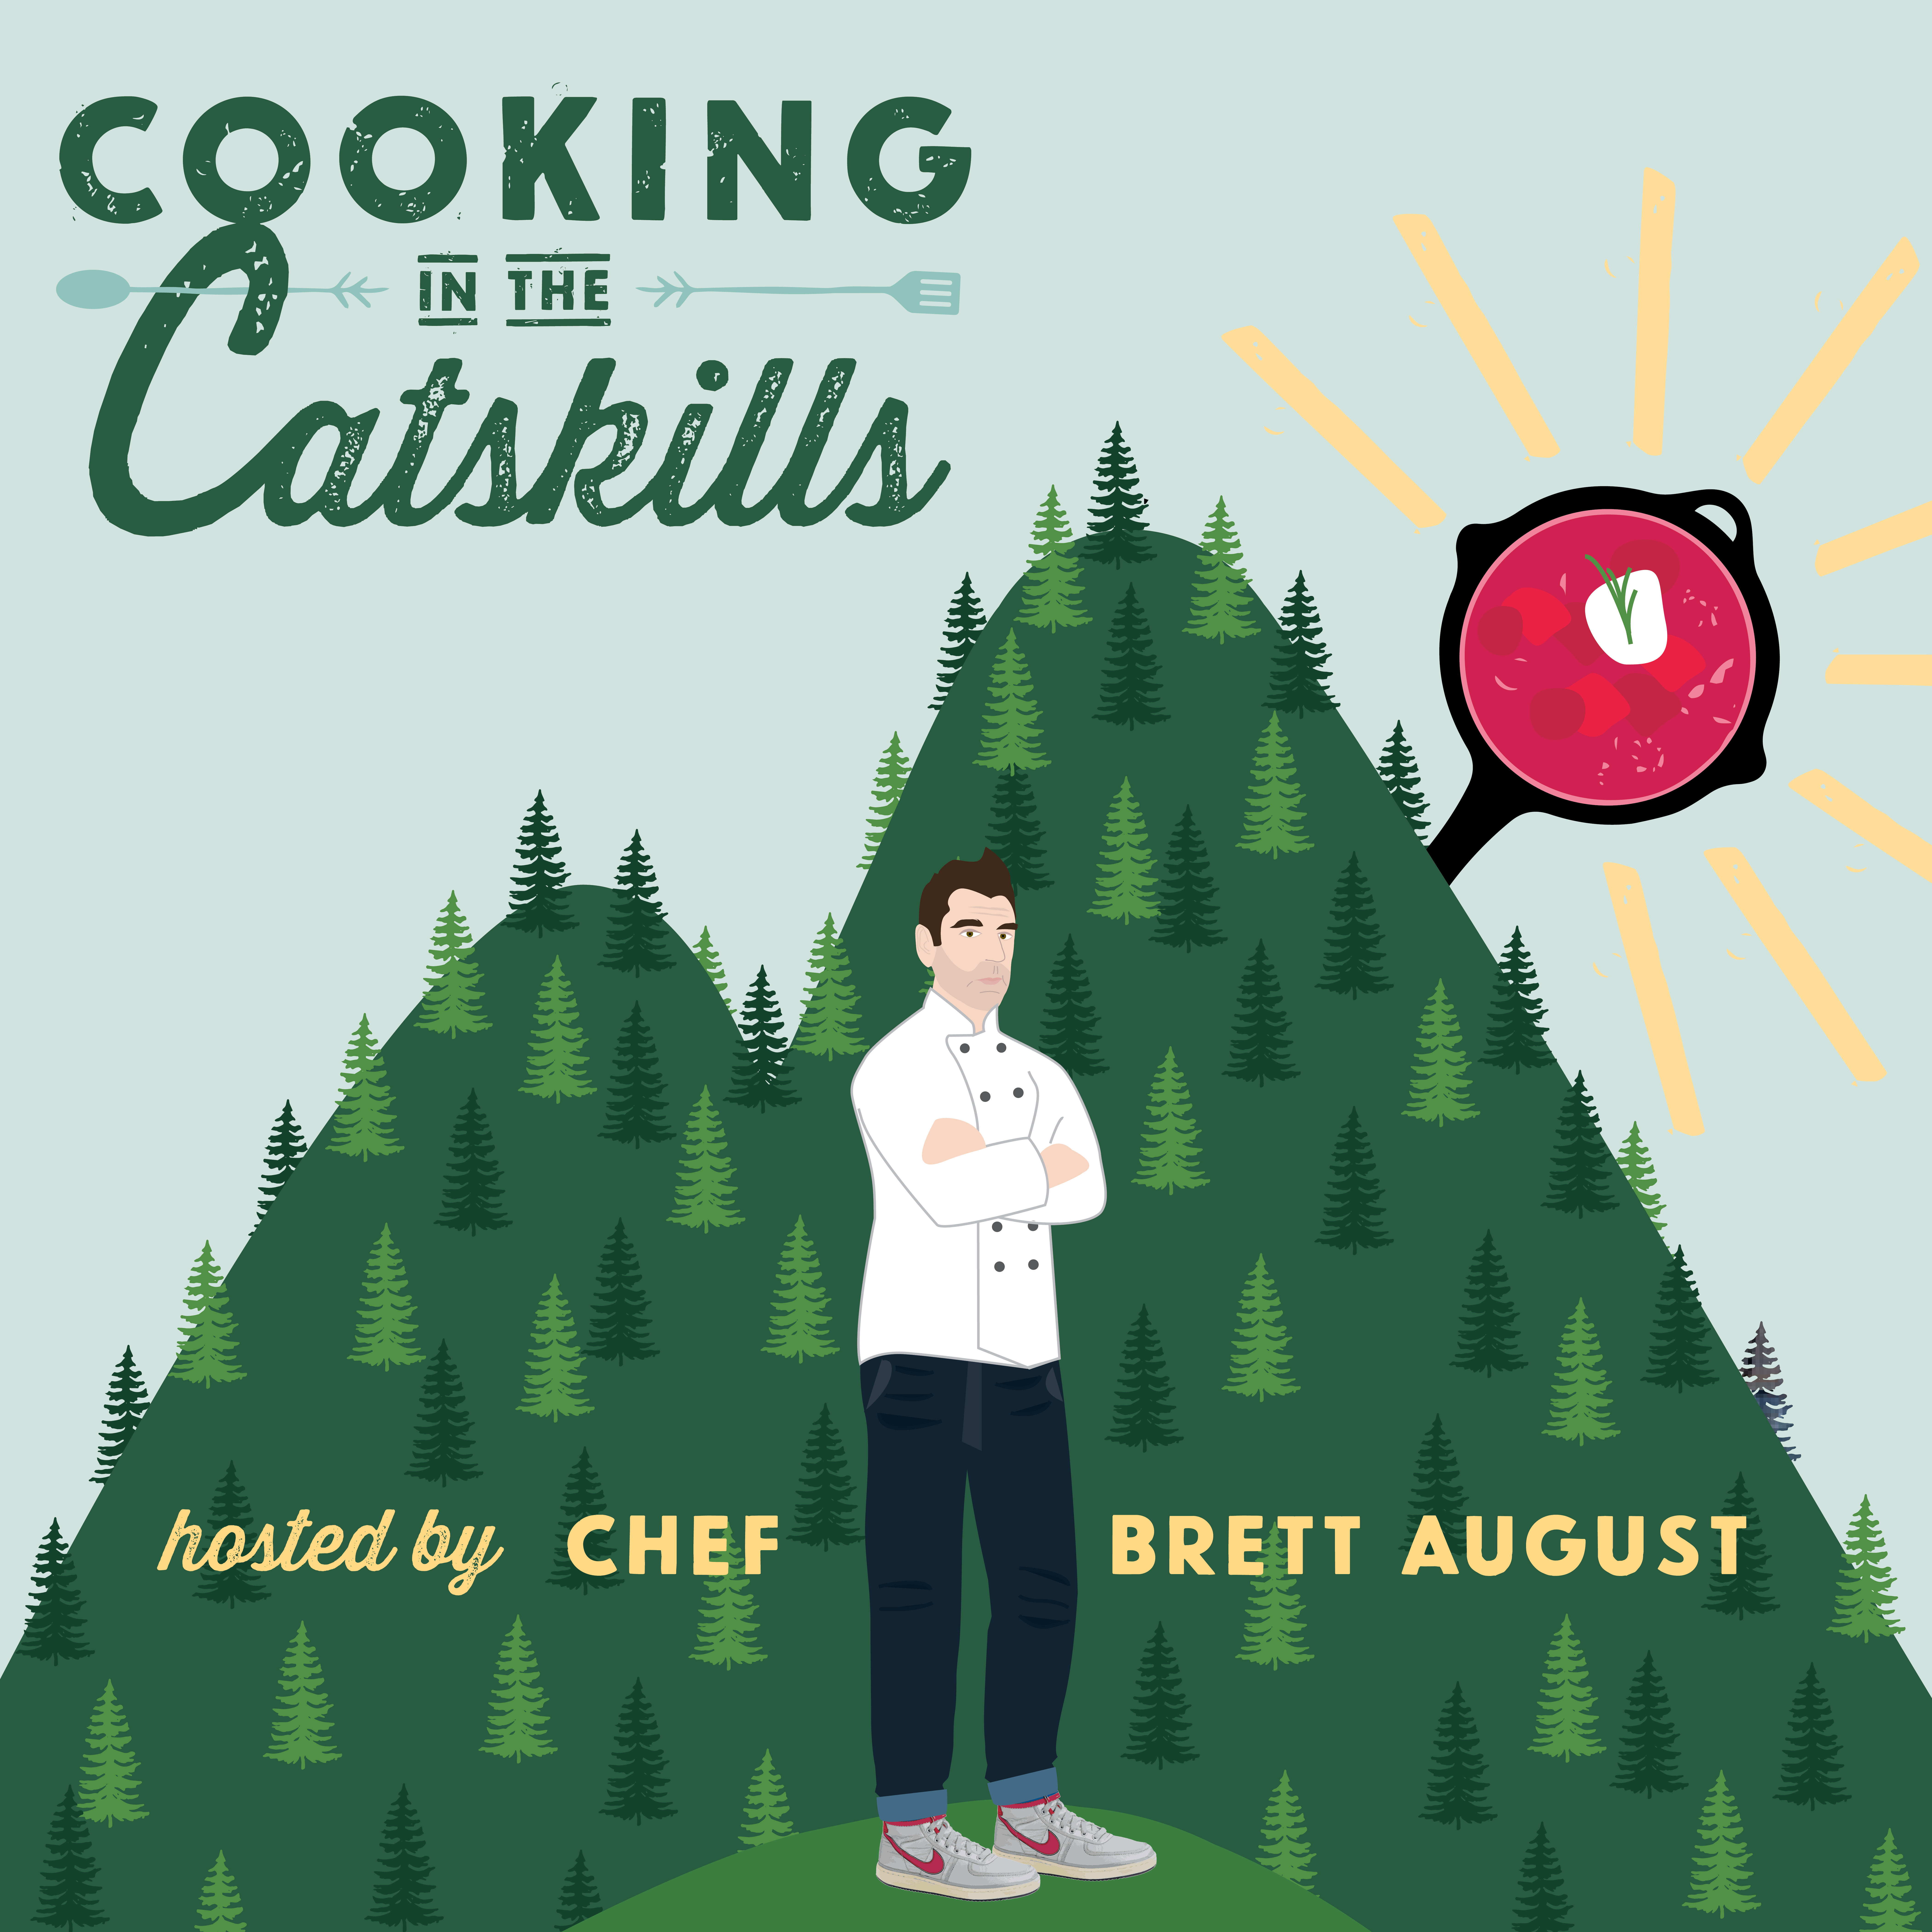 Cooking in the Catskills